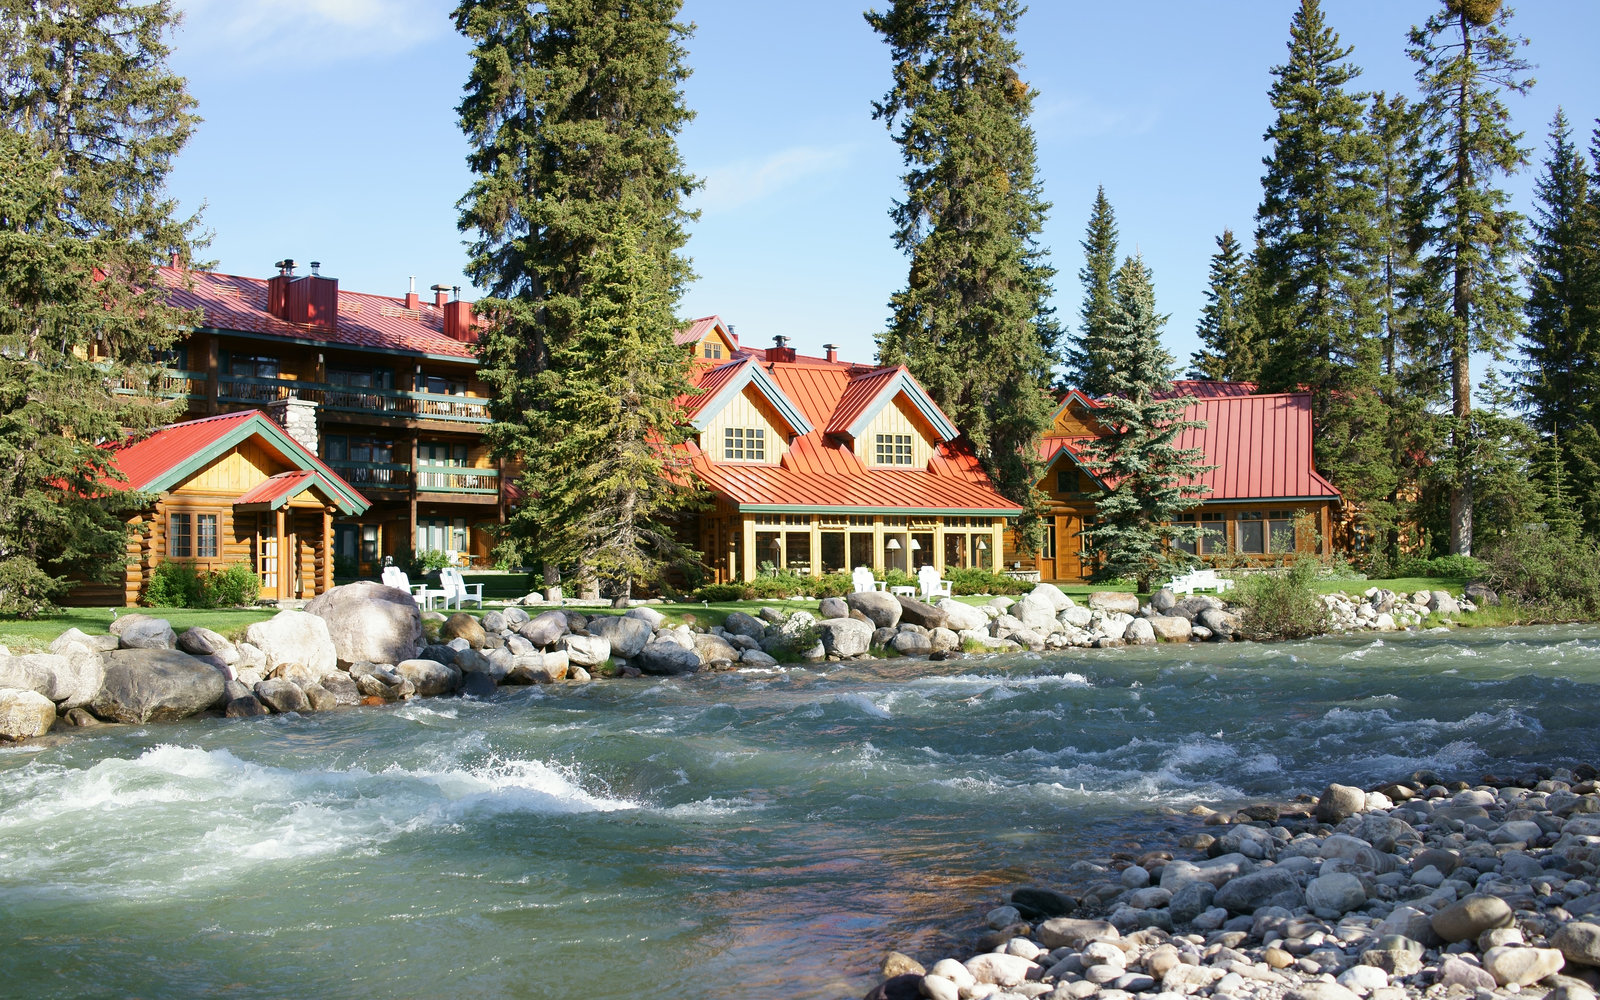 No. 6: Post Hotel & Spa, Lake Louise, Alberta